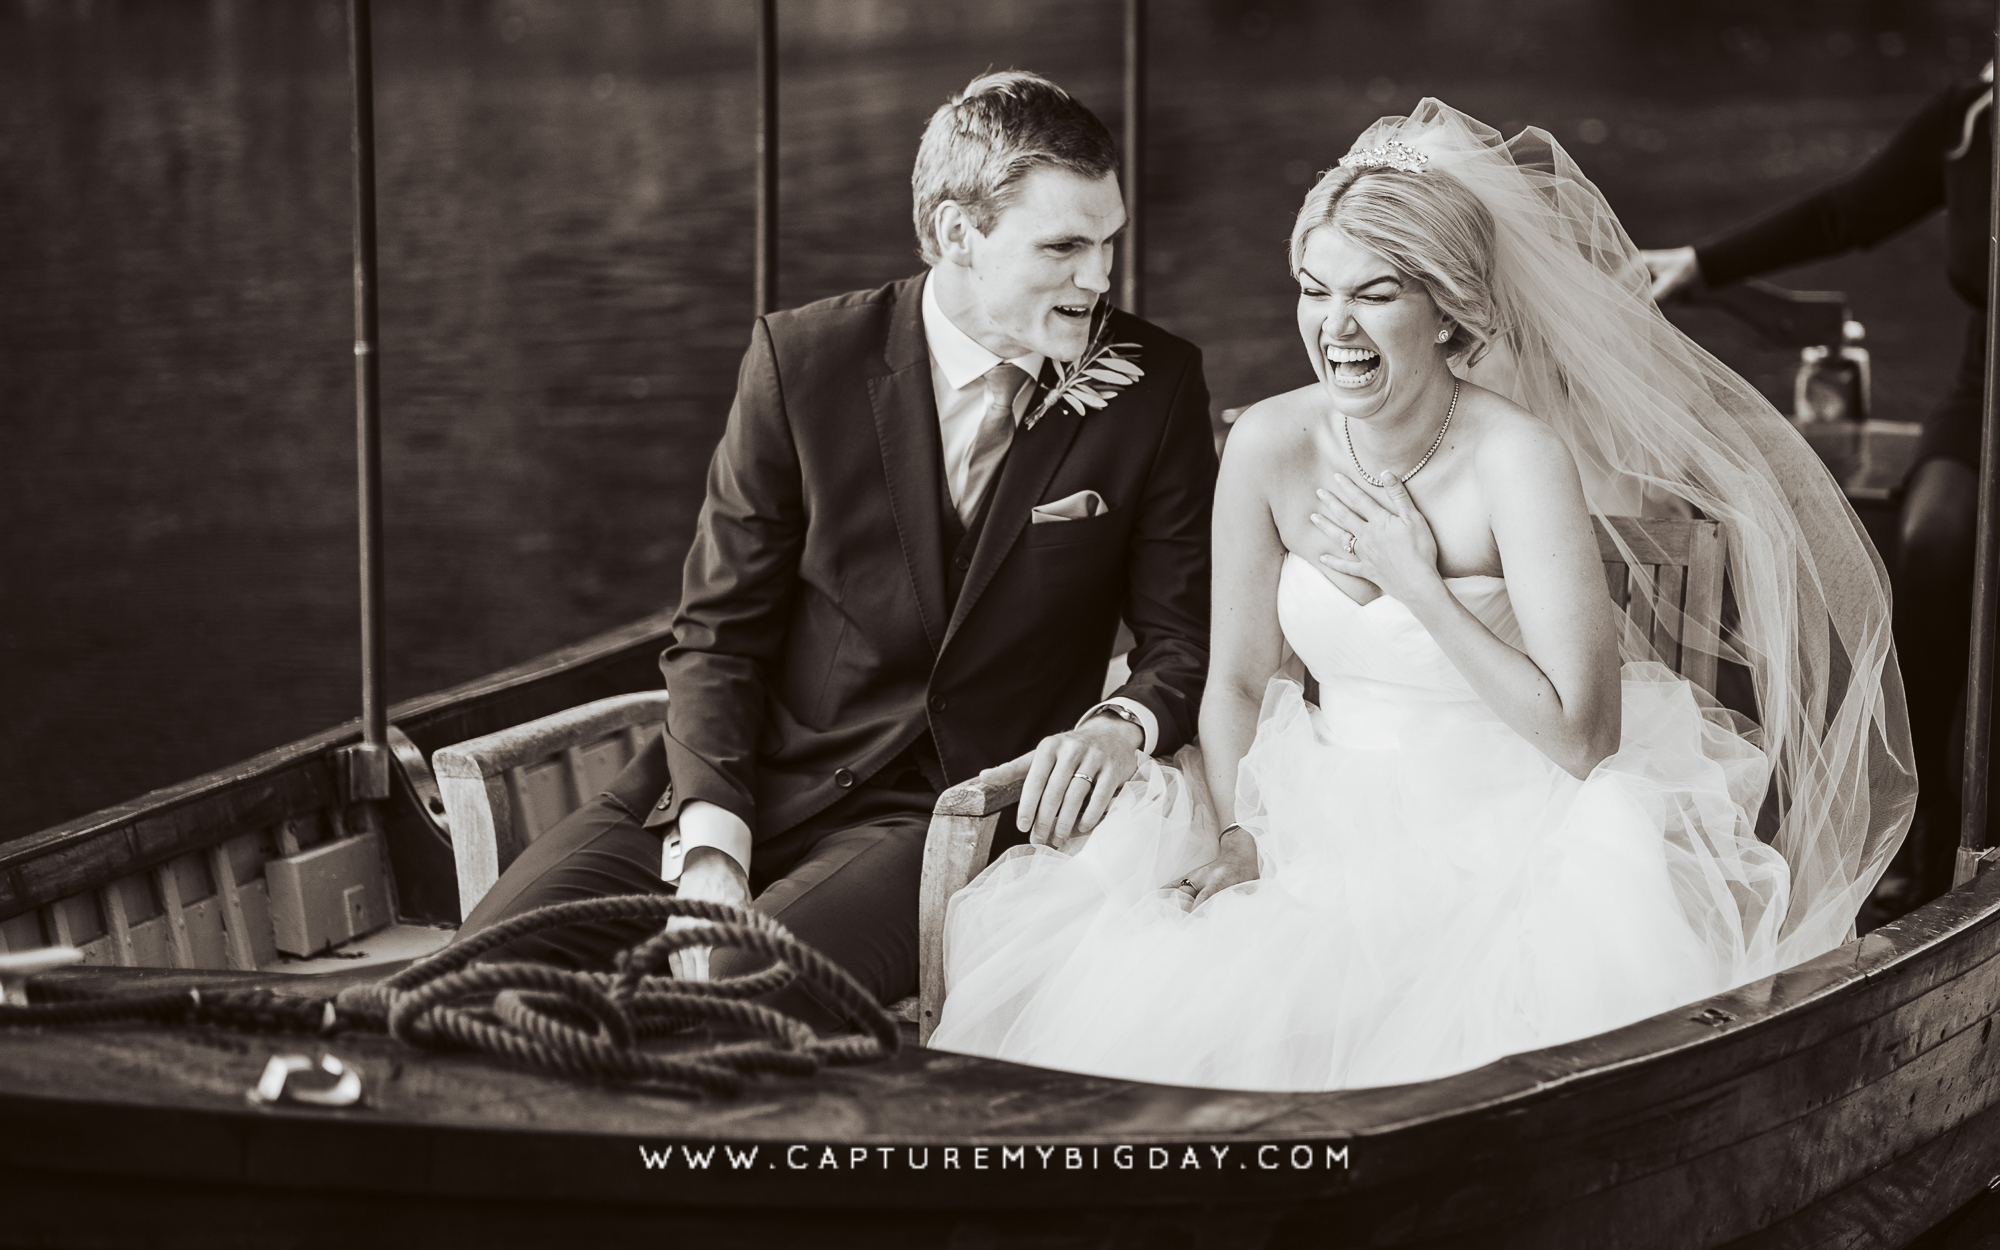 Bride laughing on boat with groom